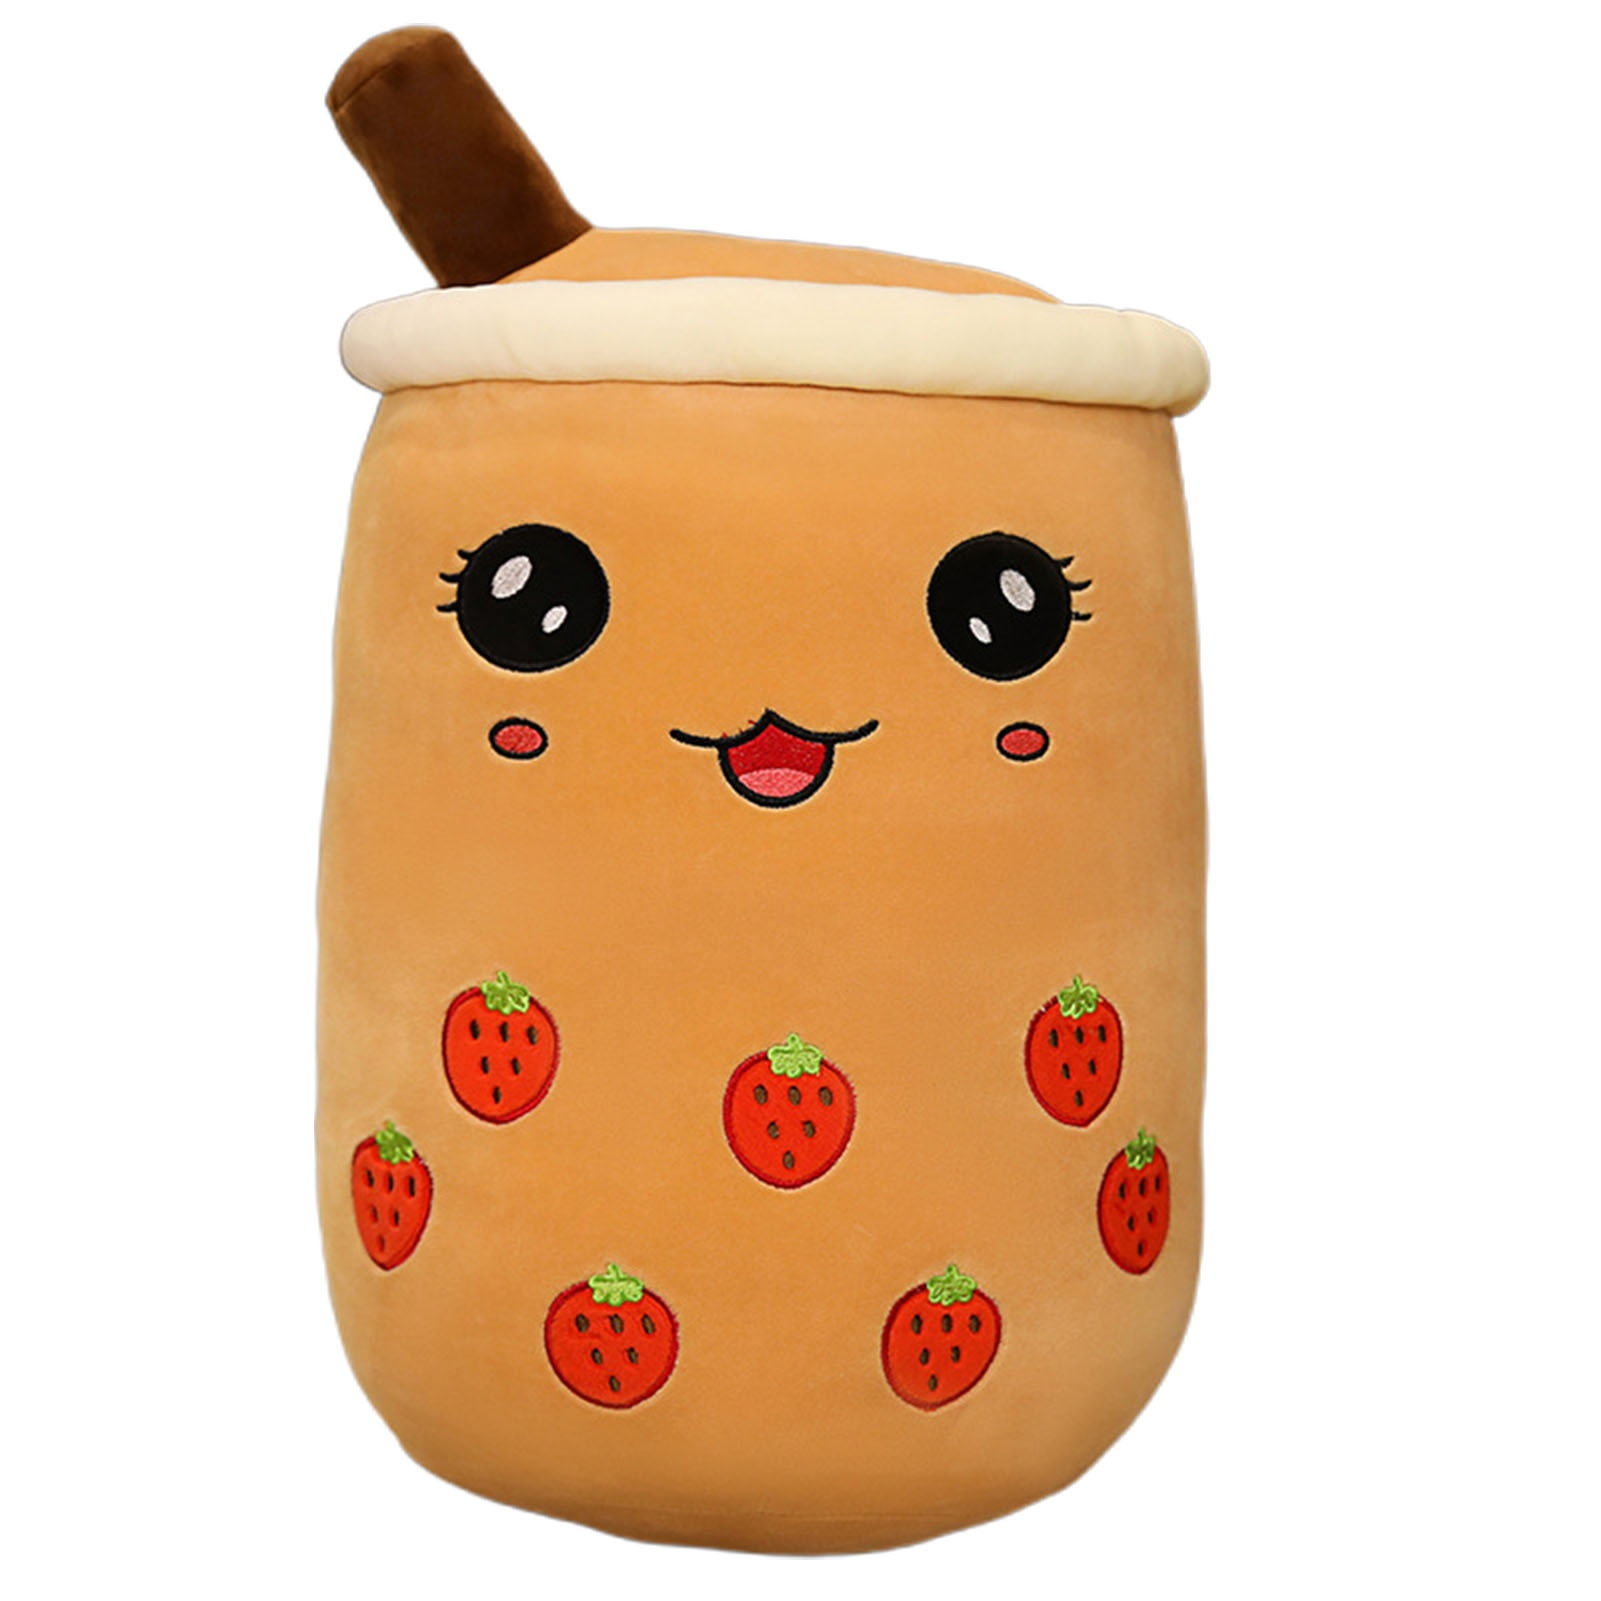 cute soft cartoon bubble tea cup plush toys filled with fashionable drinks pillow straw cute cushion milk tea cup pillow plush NEW Real Life Bubble Tea Milk Shaped Plush Toys Cartoon Tea Pillow Cushion Cute Soft Plush Toy For Kids Birthday Funny Gift